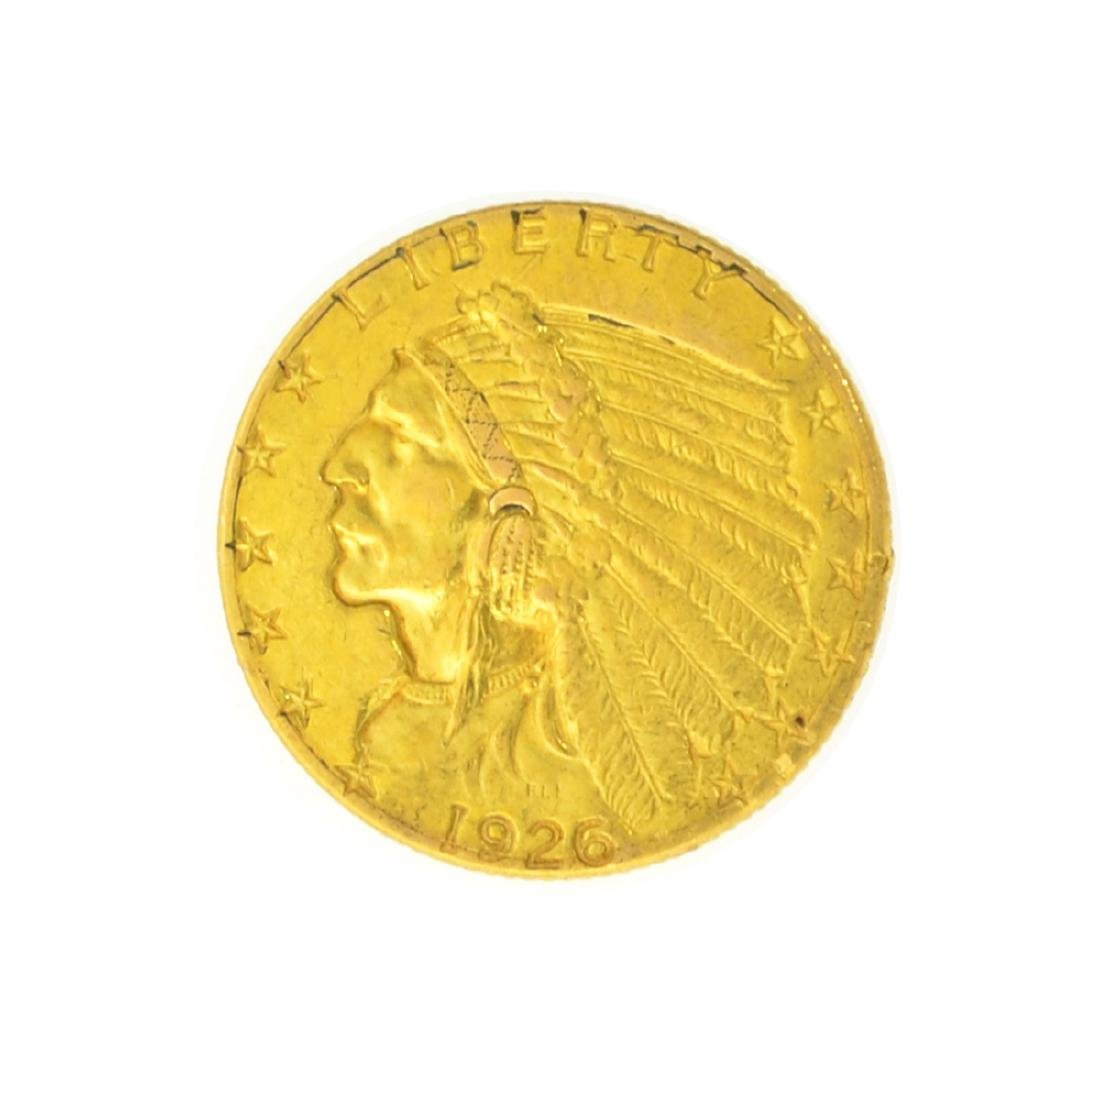 1926 $2.50 U.S. Indian Head Gold Coin - Great